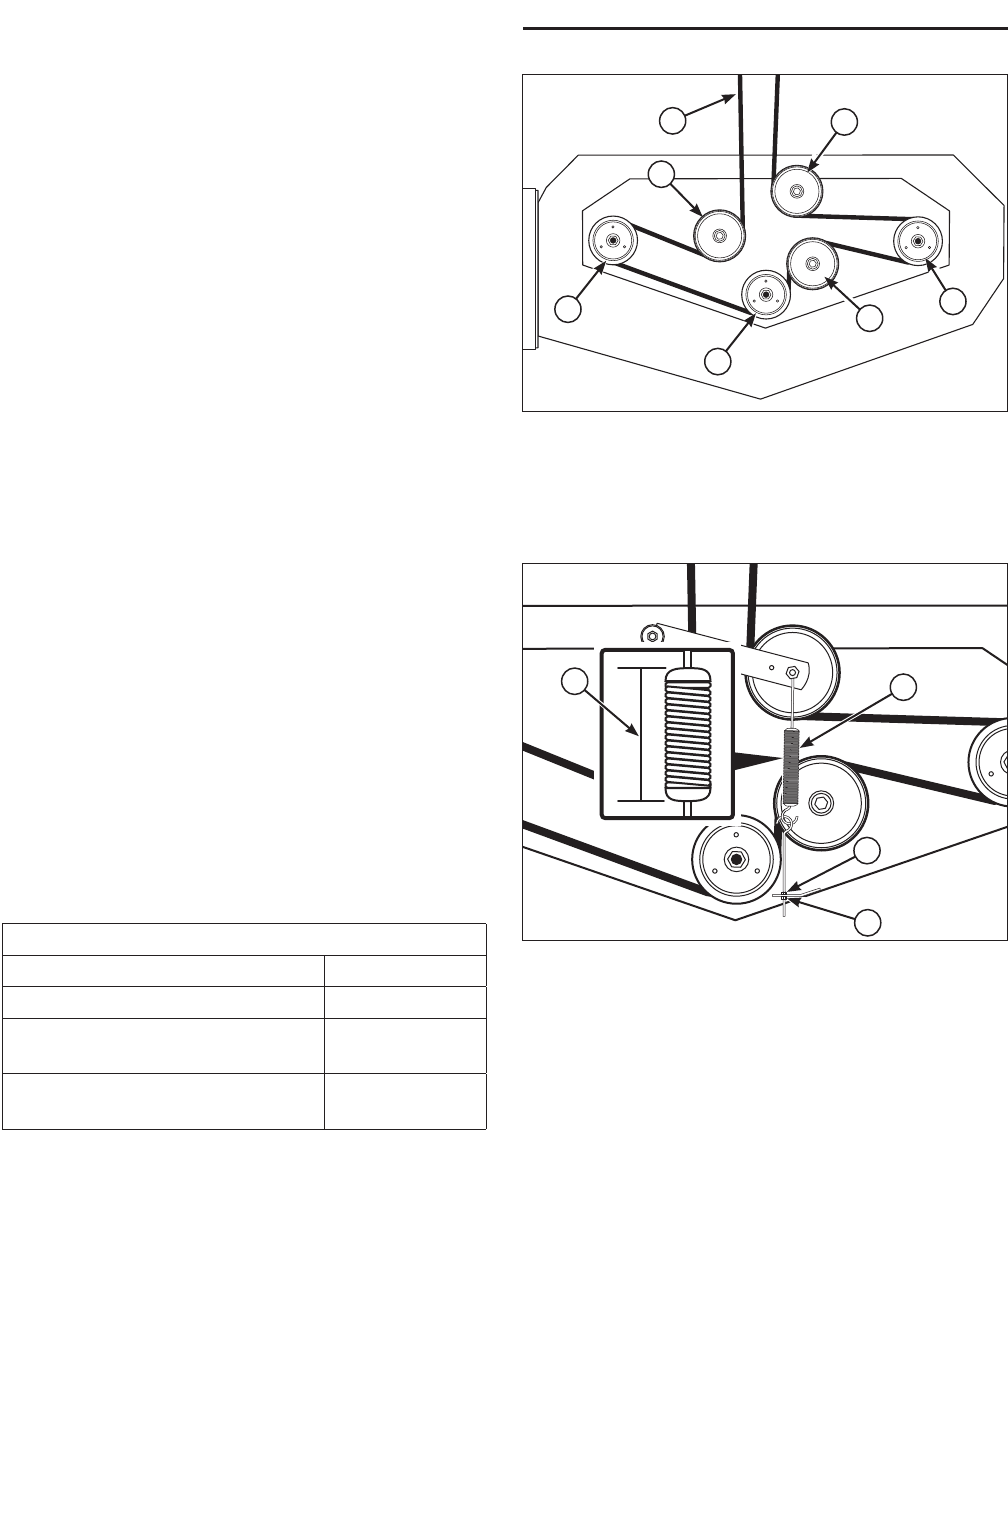 Page 38 of Ferris Industries Lawn Mower 5900677 User Guide